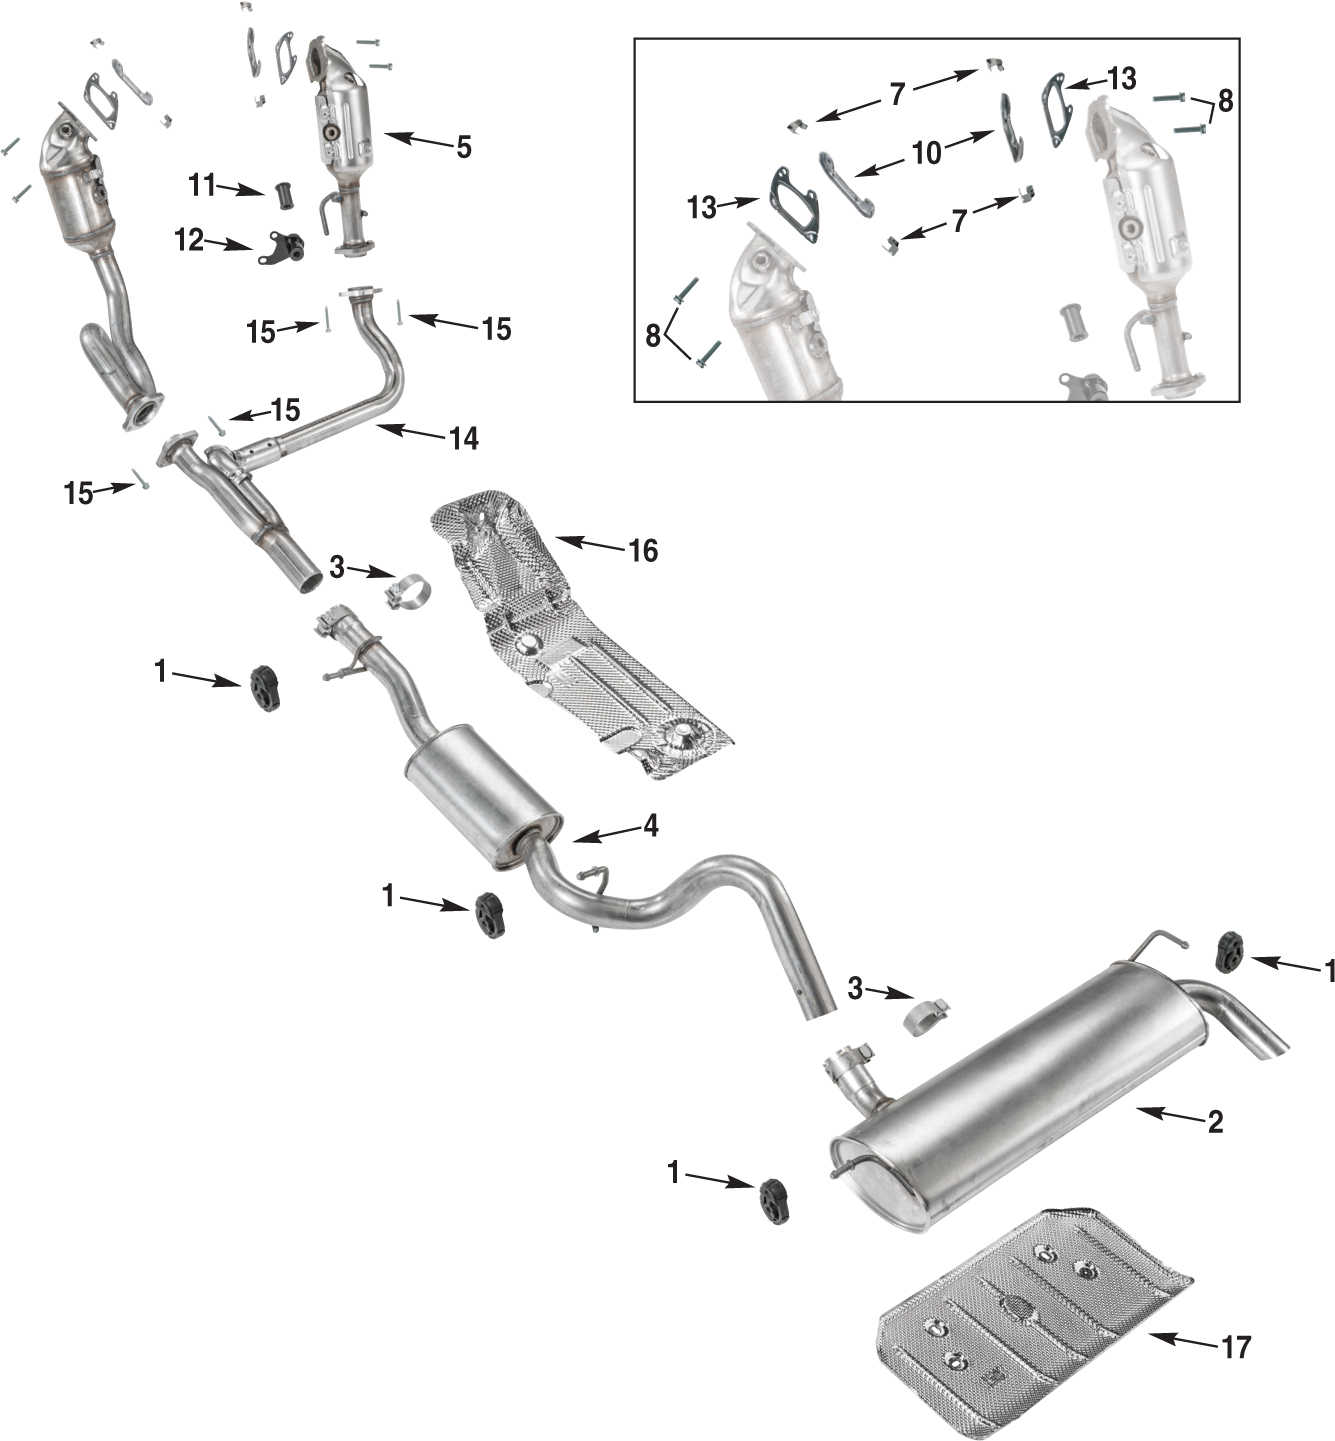 2007 jeep wrangler wiring diagram rj45 wall socket parts  for free